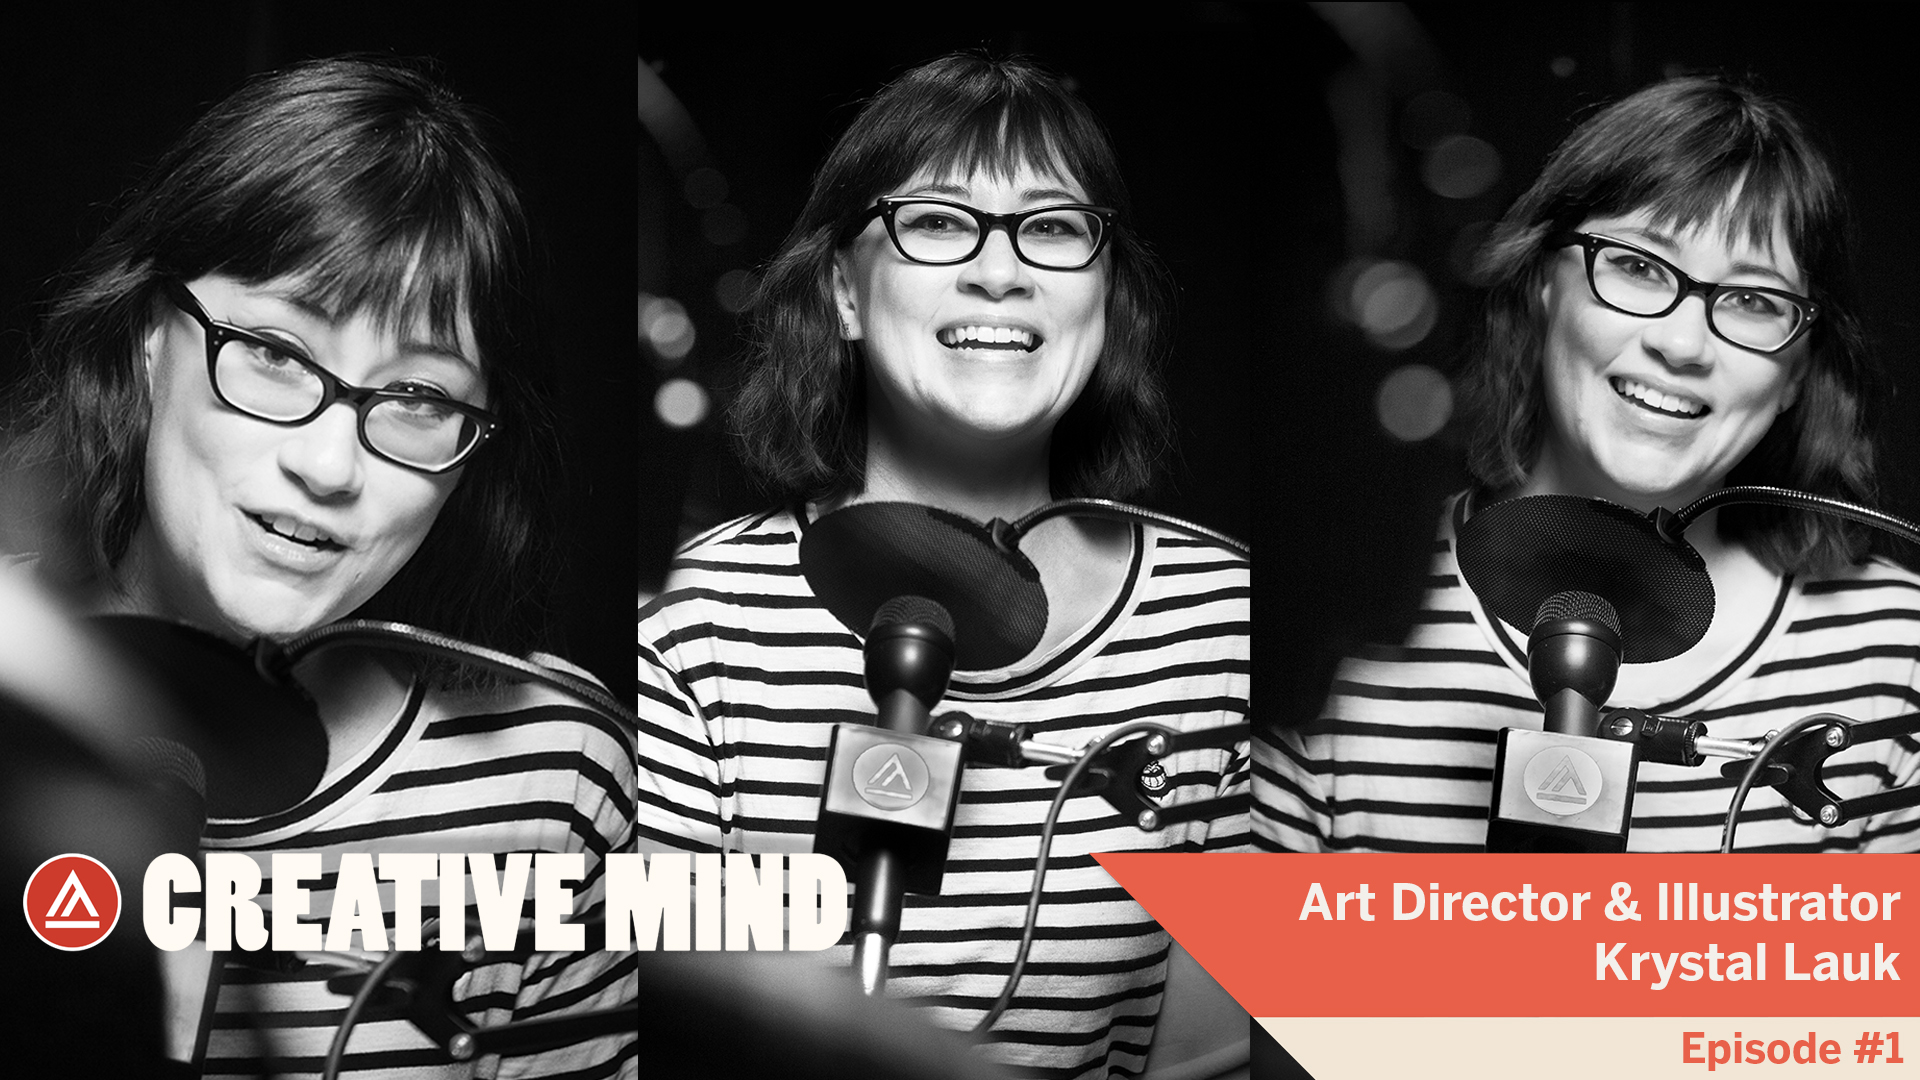 Creative Mind Podcast Episode 1